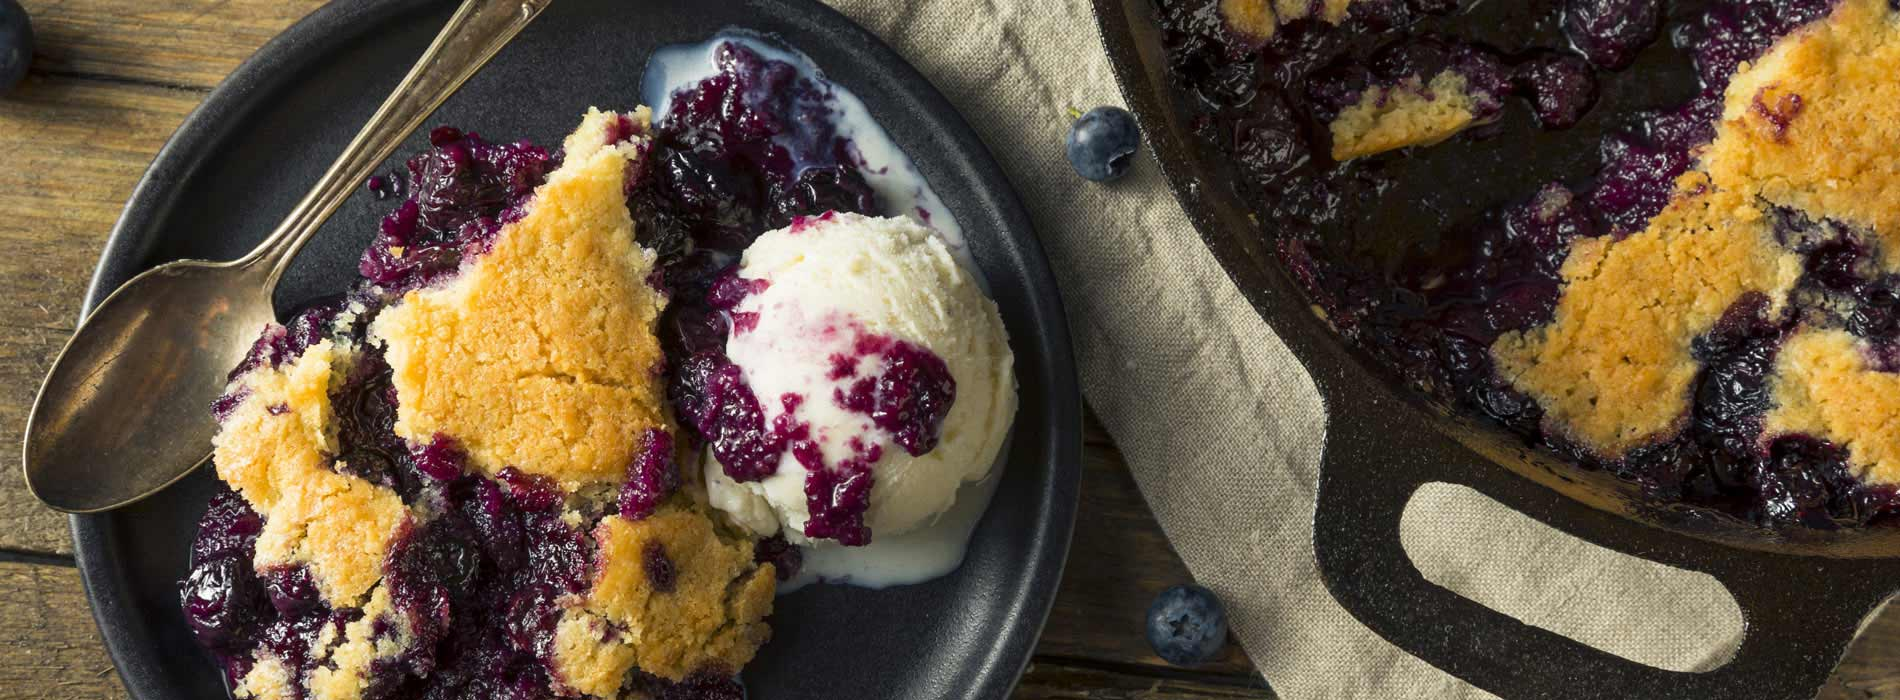 Saskatoon Berries are great in your favourite dessert